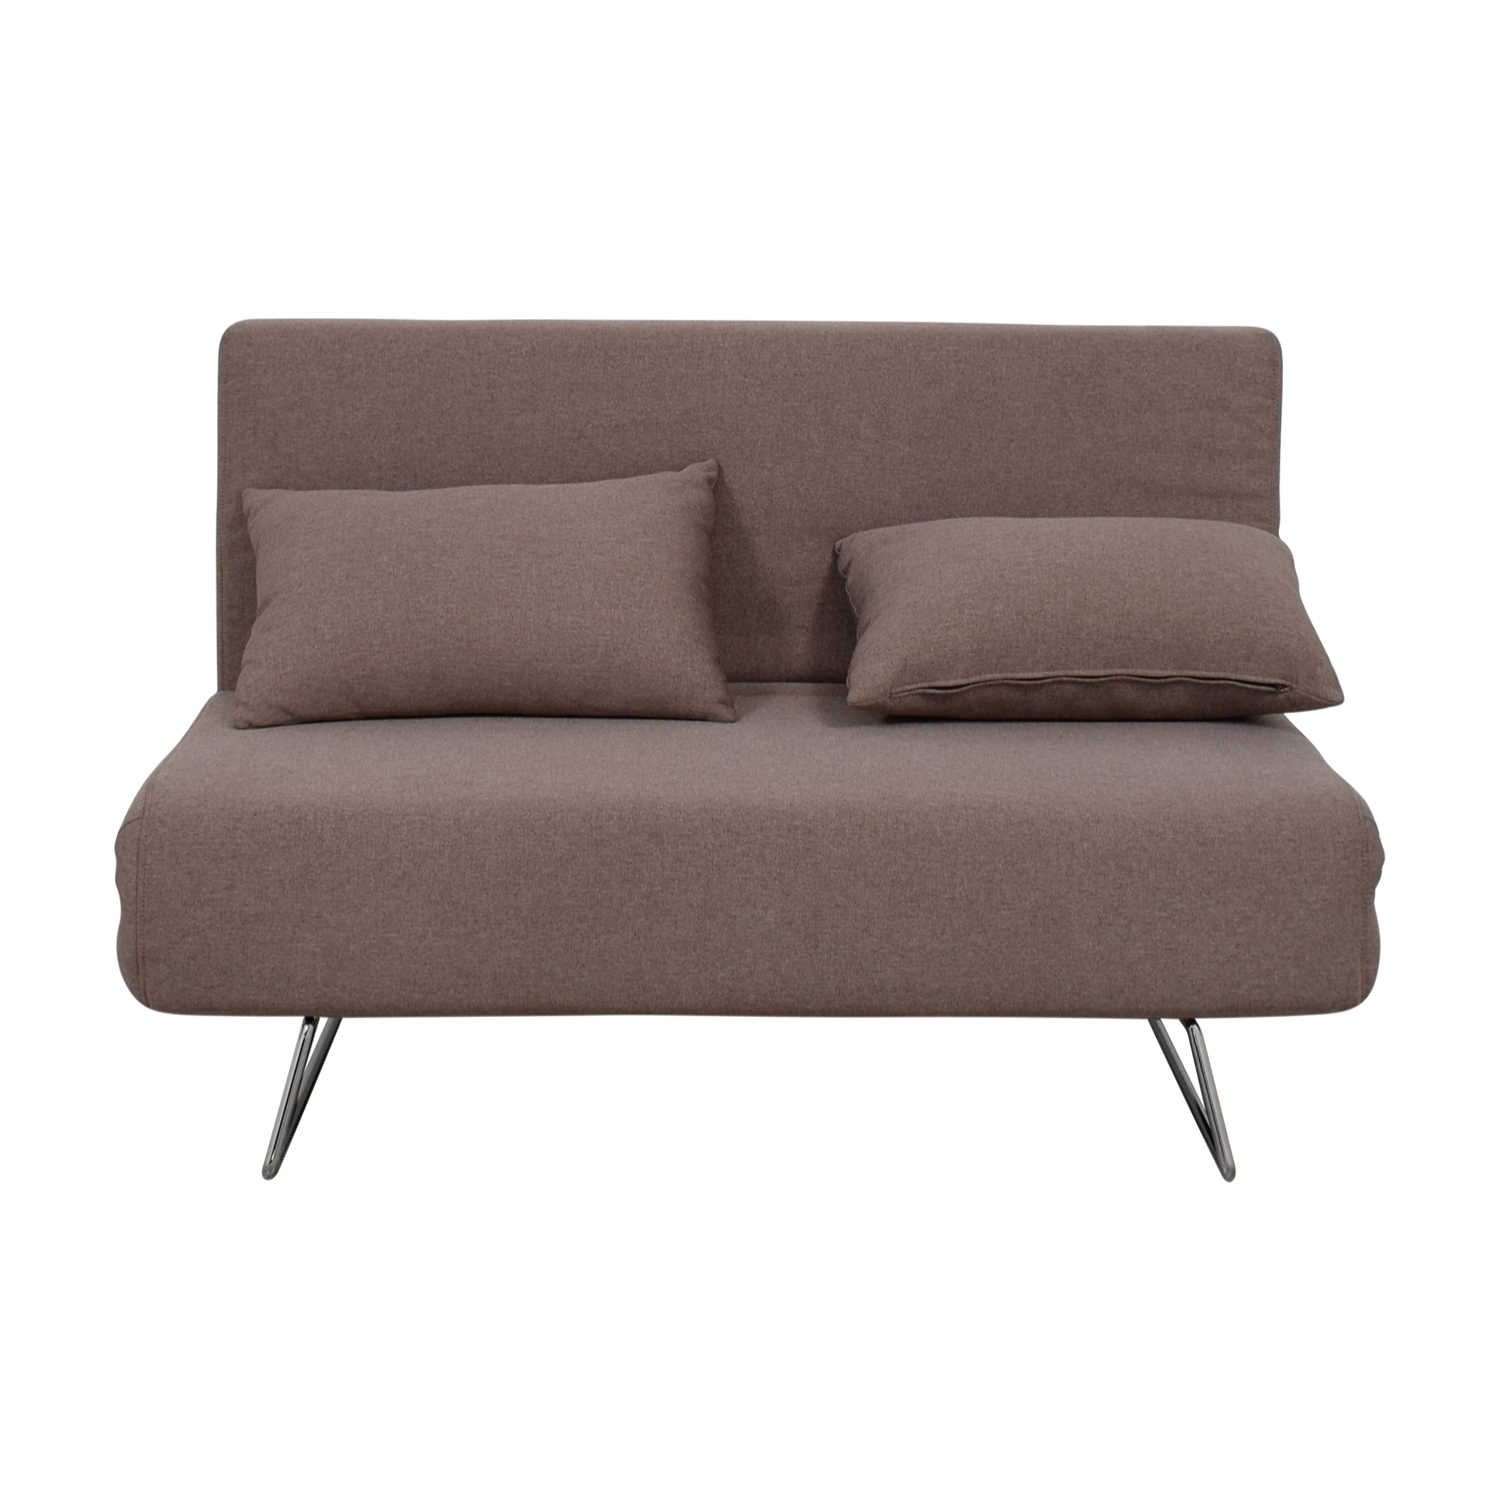 All Modern Gray Convertible Futon